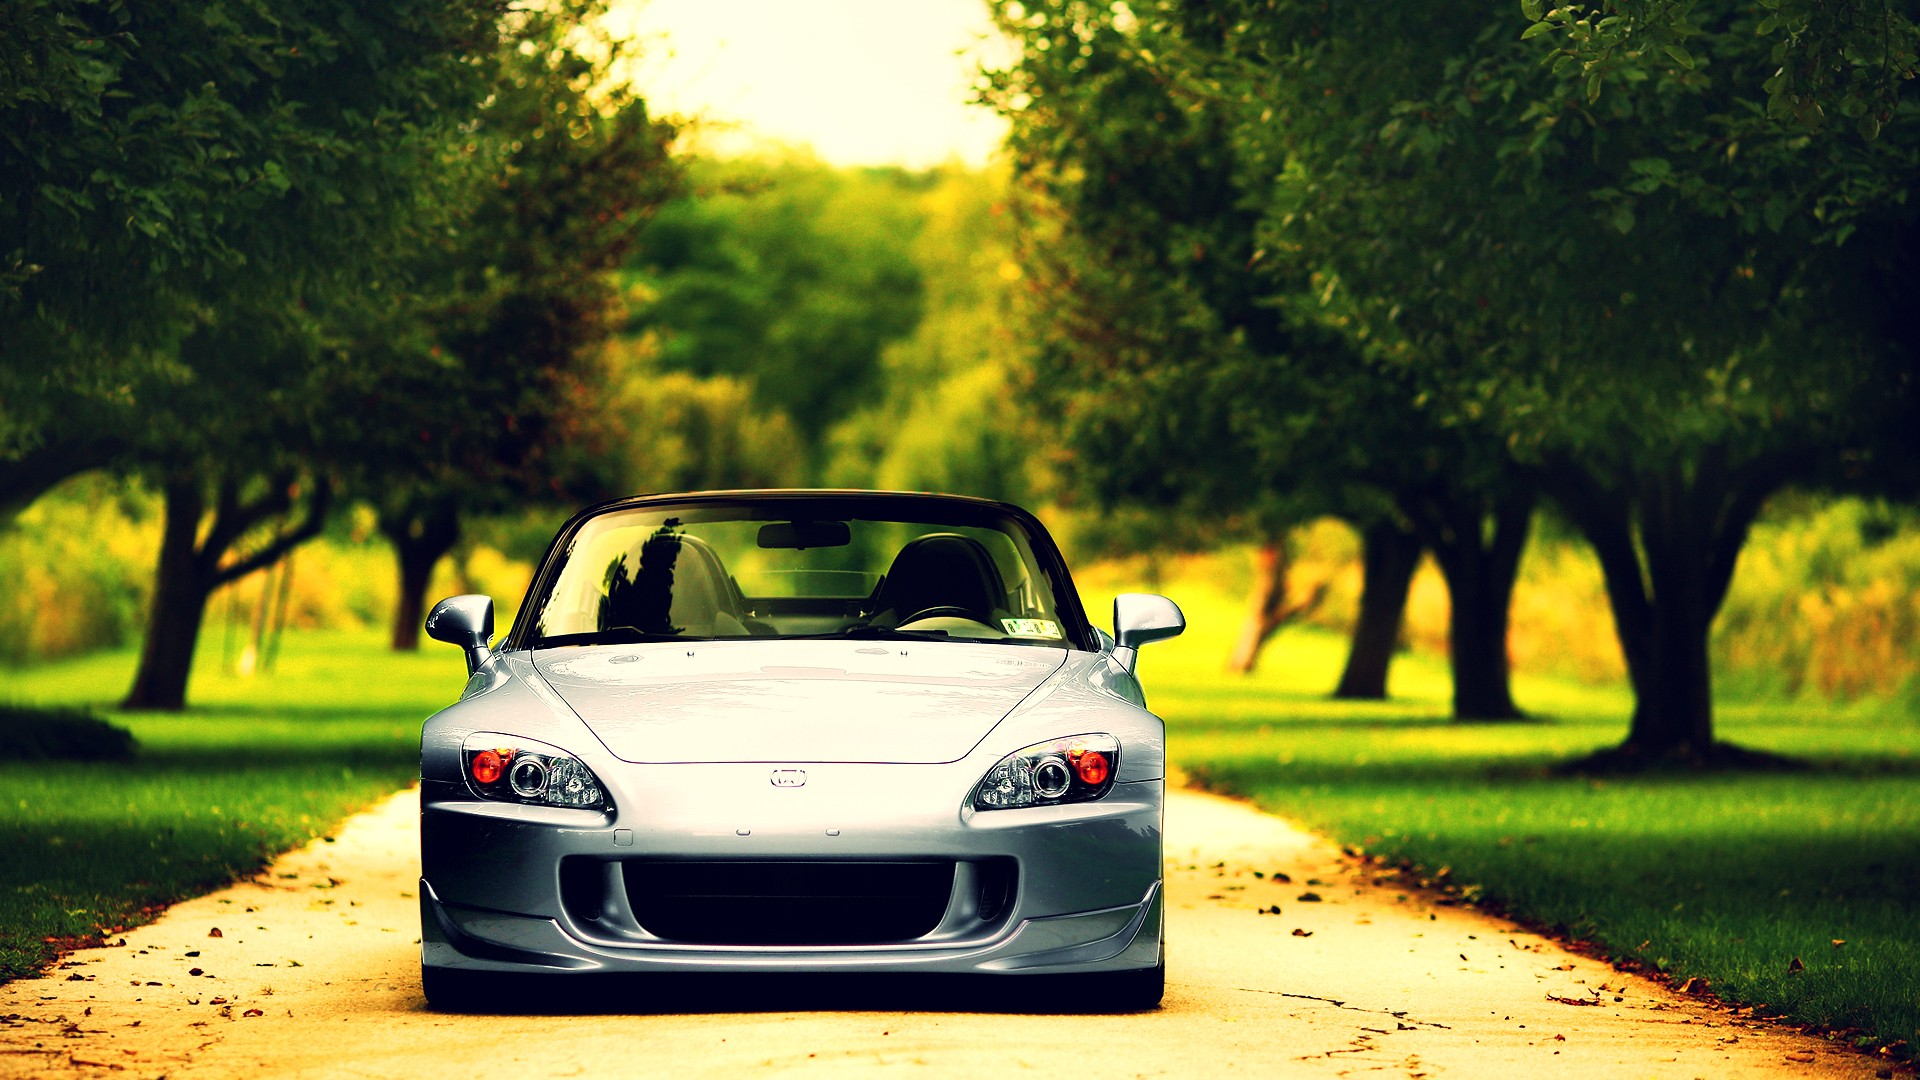 1920x1080 - Honda S2000 Wallpapers 23